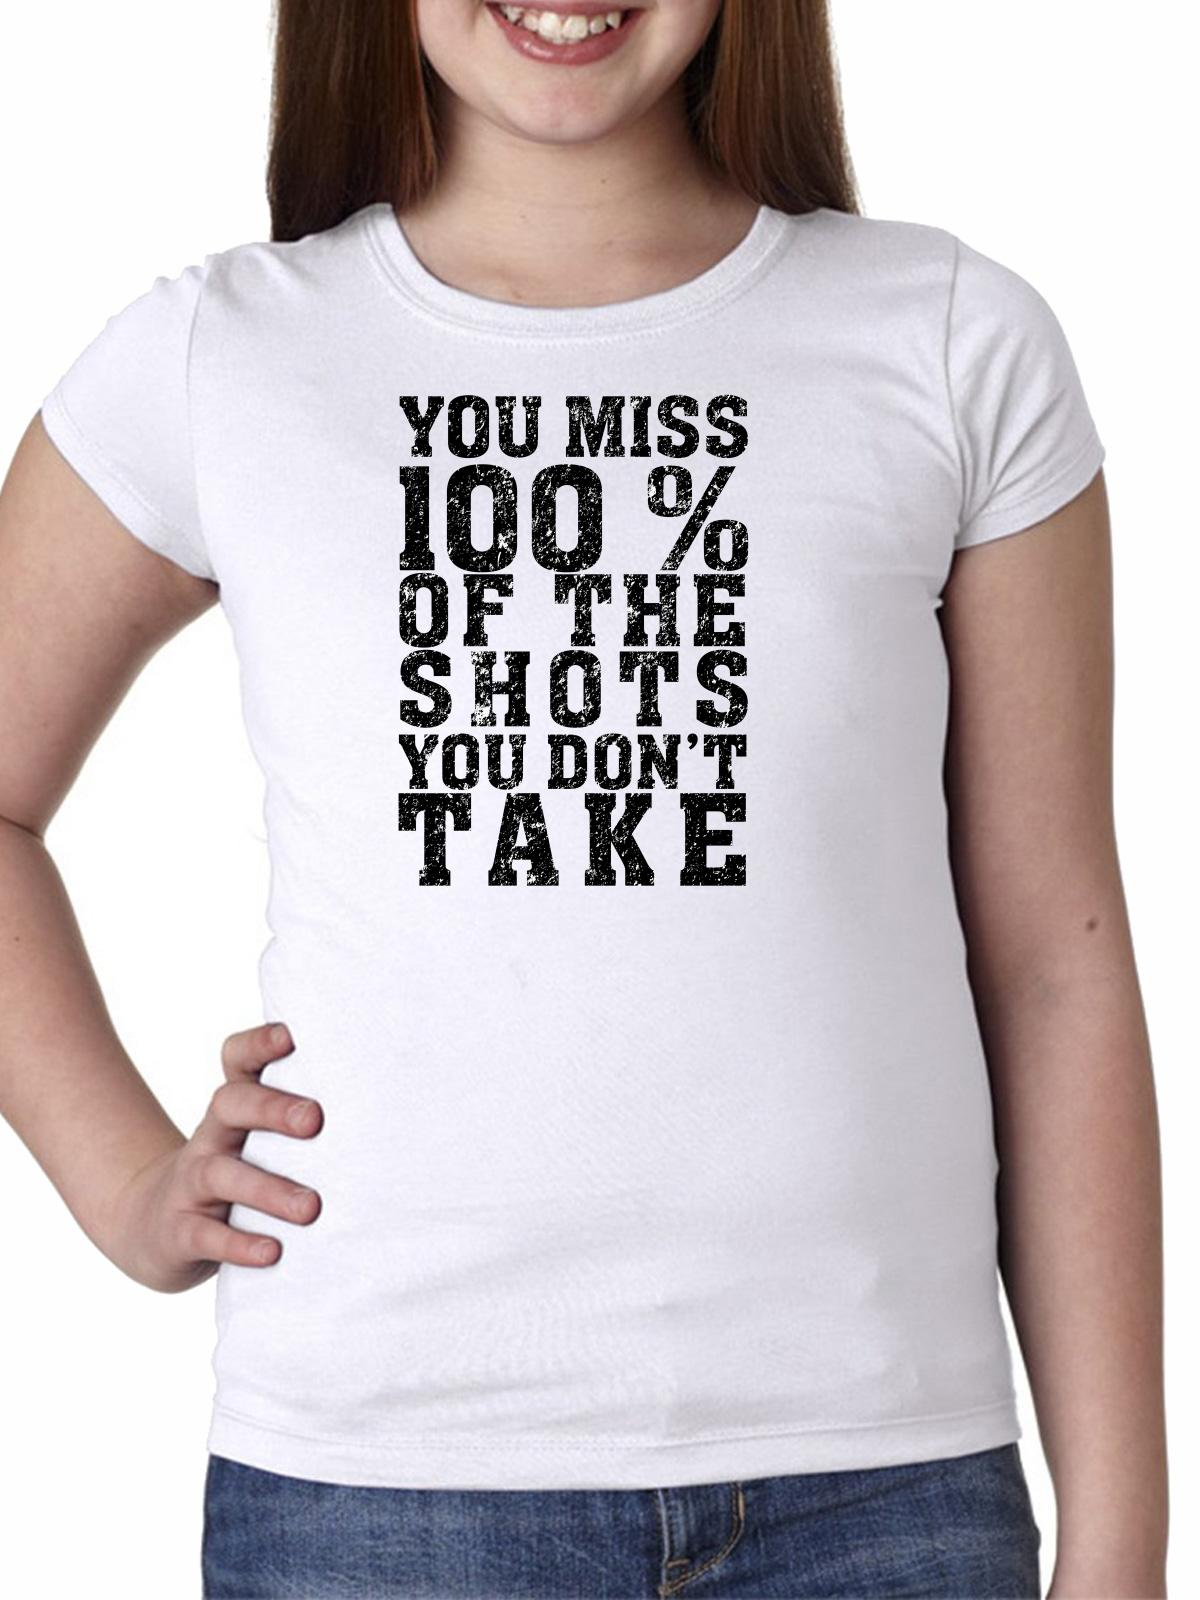 You Miss 100% Of The Shots You Don't Take Hockey Girl's Cotton Youth T-Shirt by Hollywood Thread